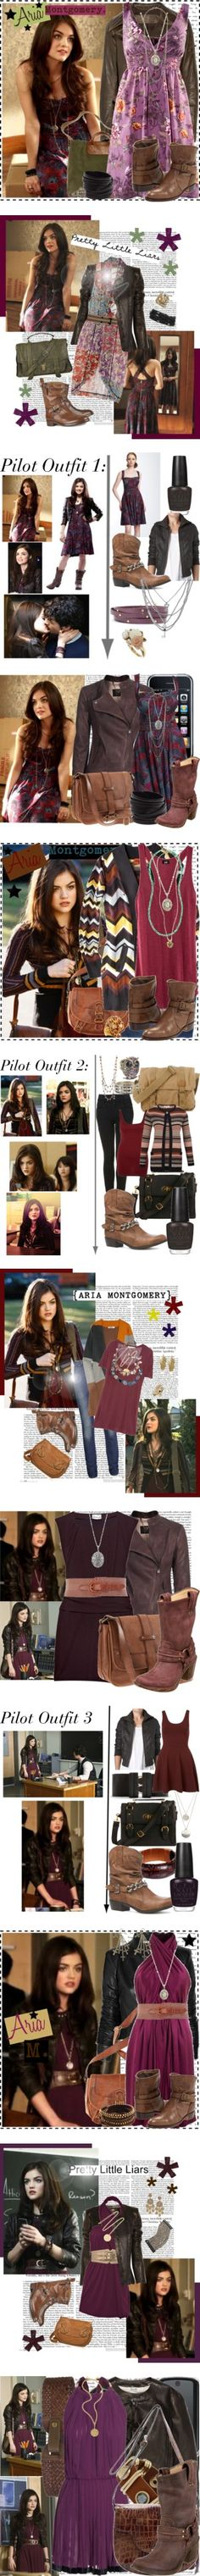 """""""Aria - Pretty Little Liars 1"""" by larinhacarter ❤ liked on Polyvore"""